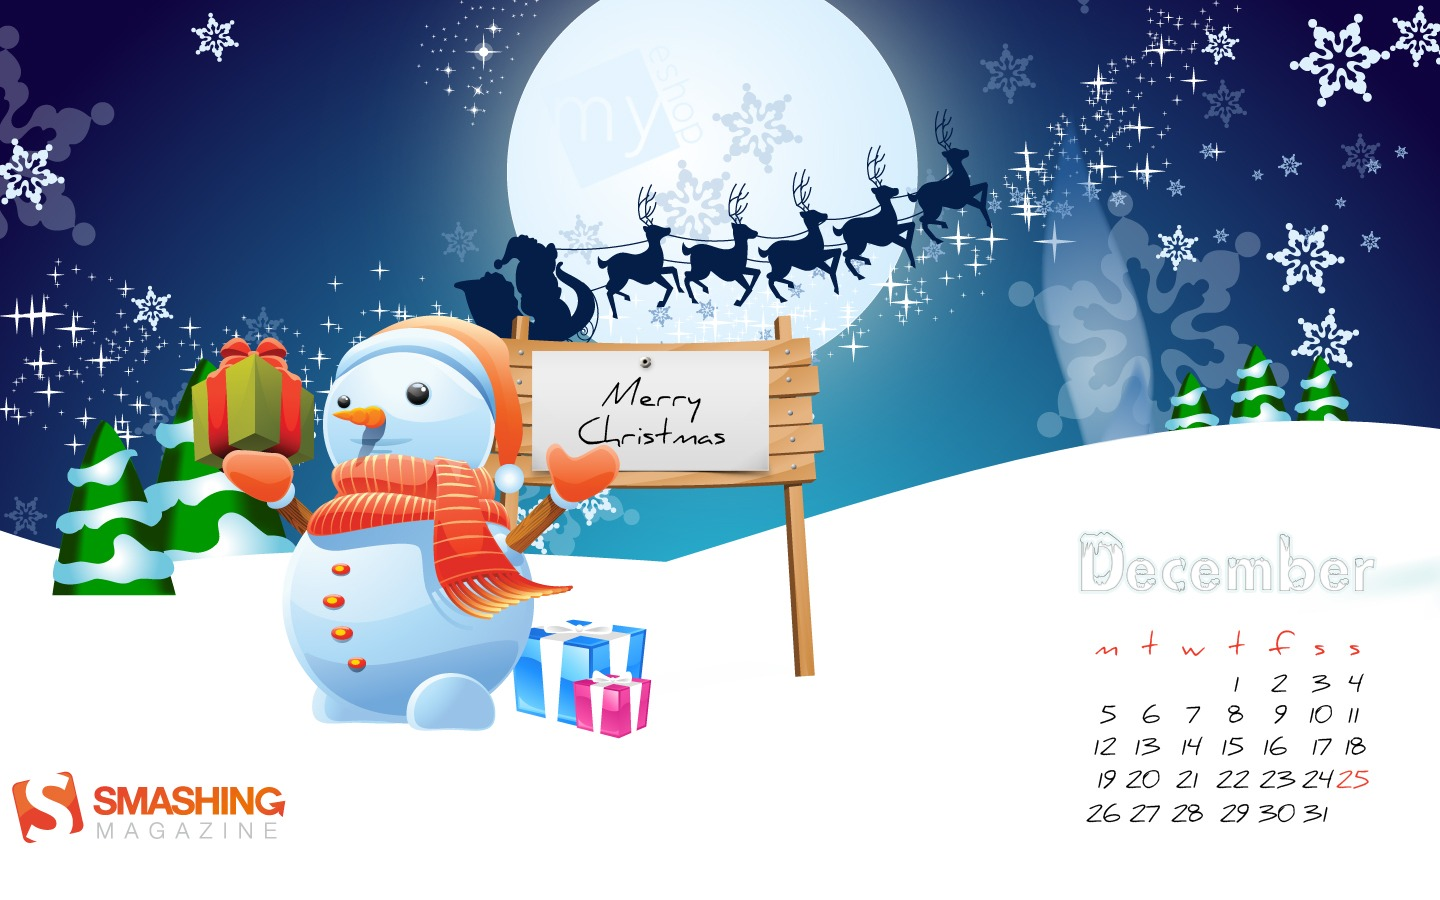 In January Calendar Wallpaper 31166